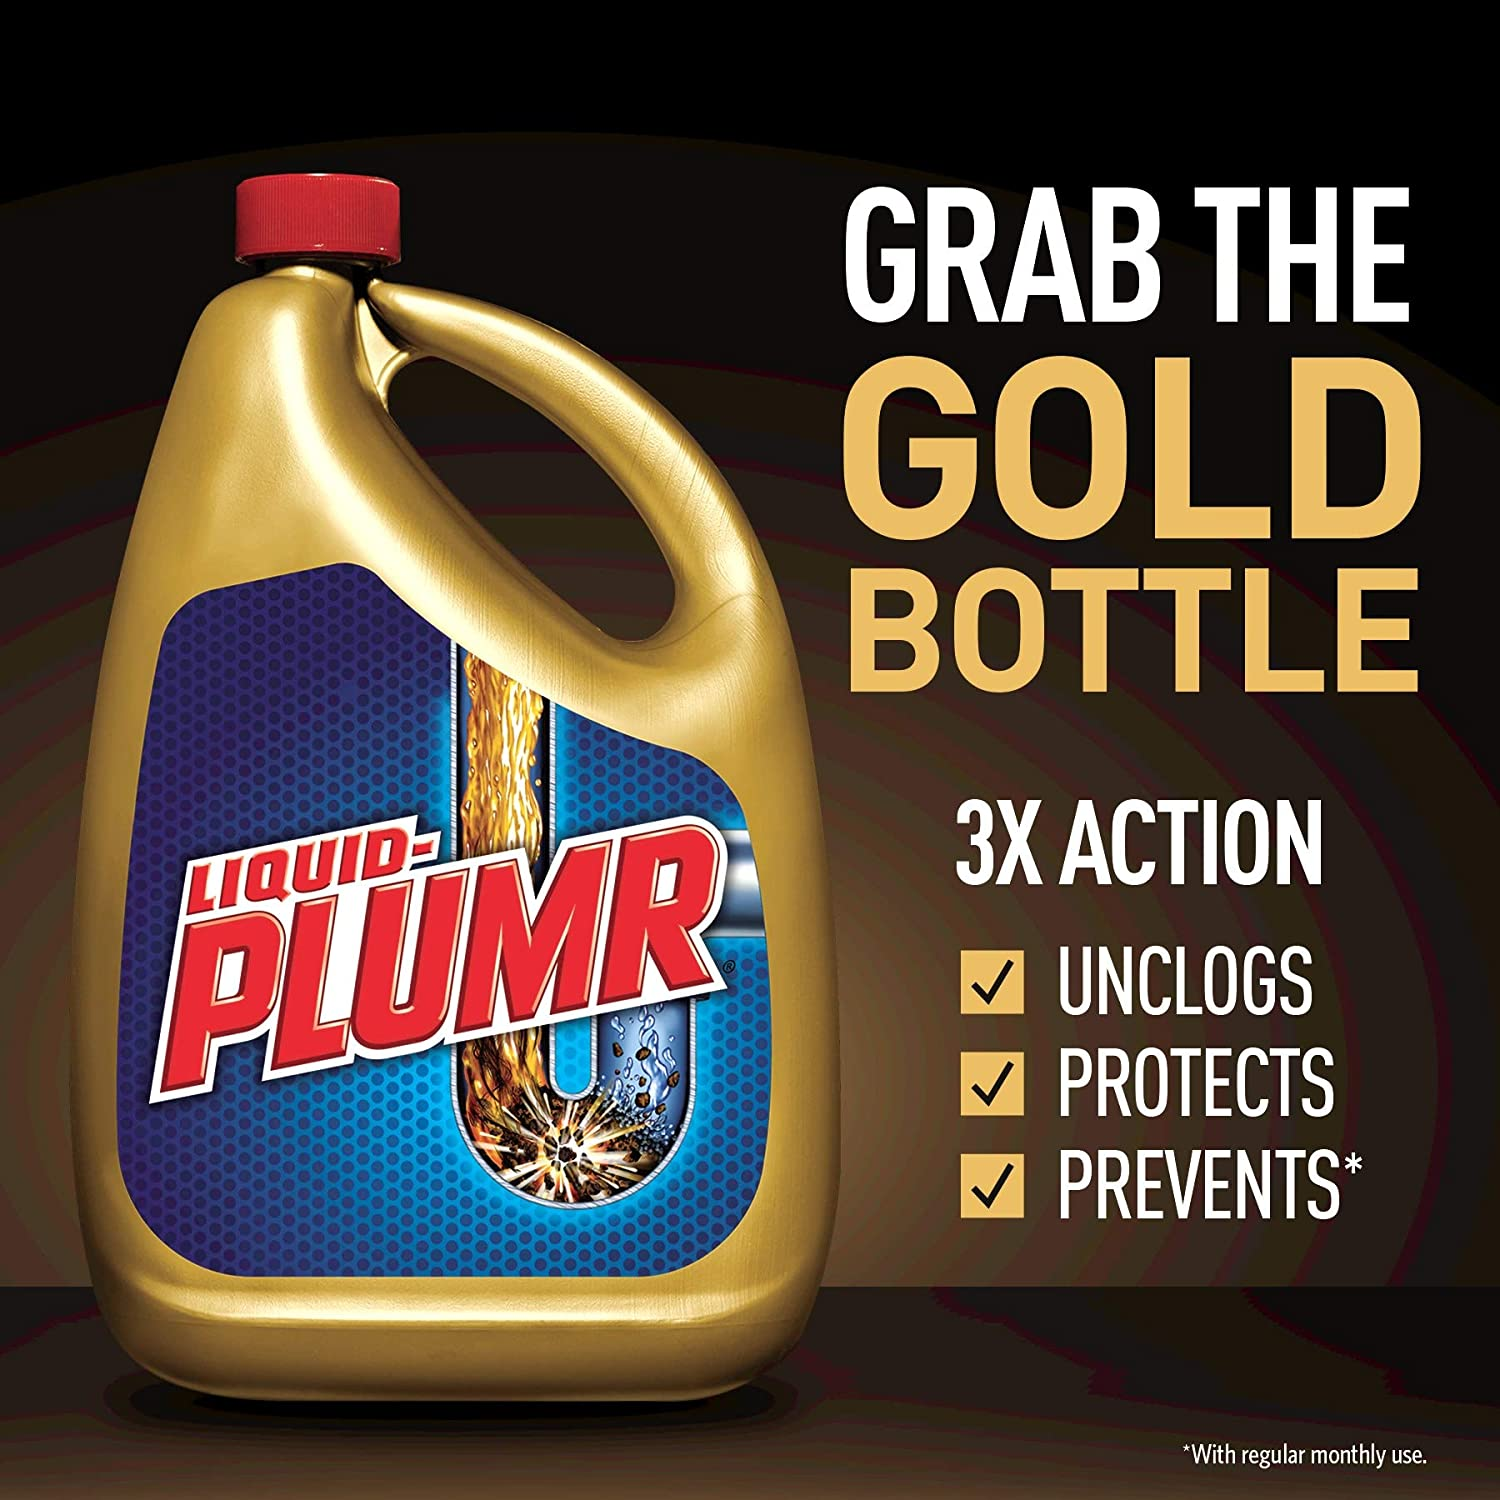 Liquid-Plumr Pro-Strength Drain Cleaner